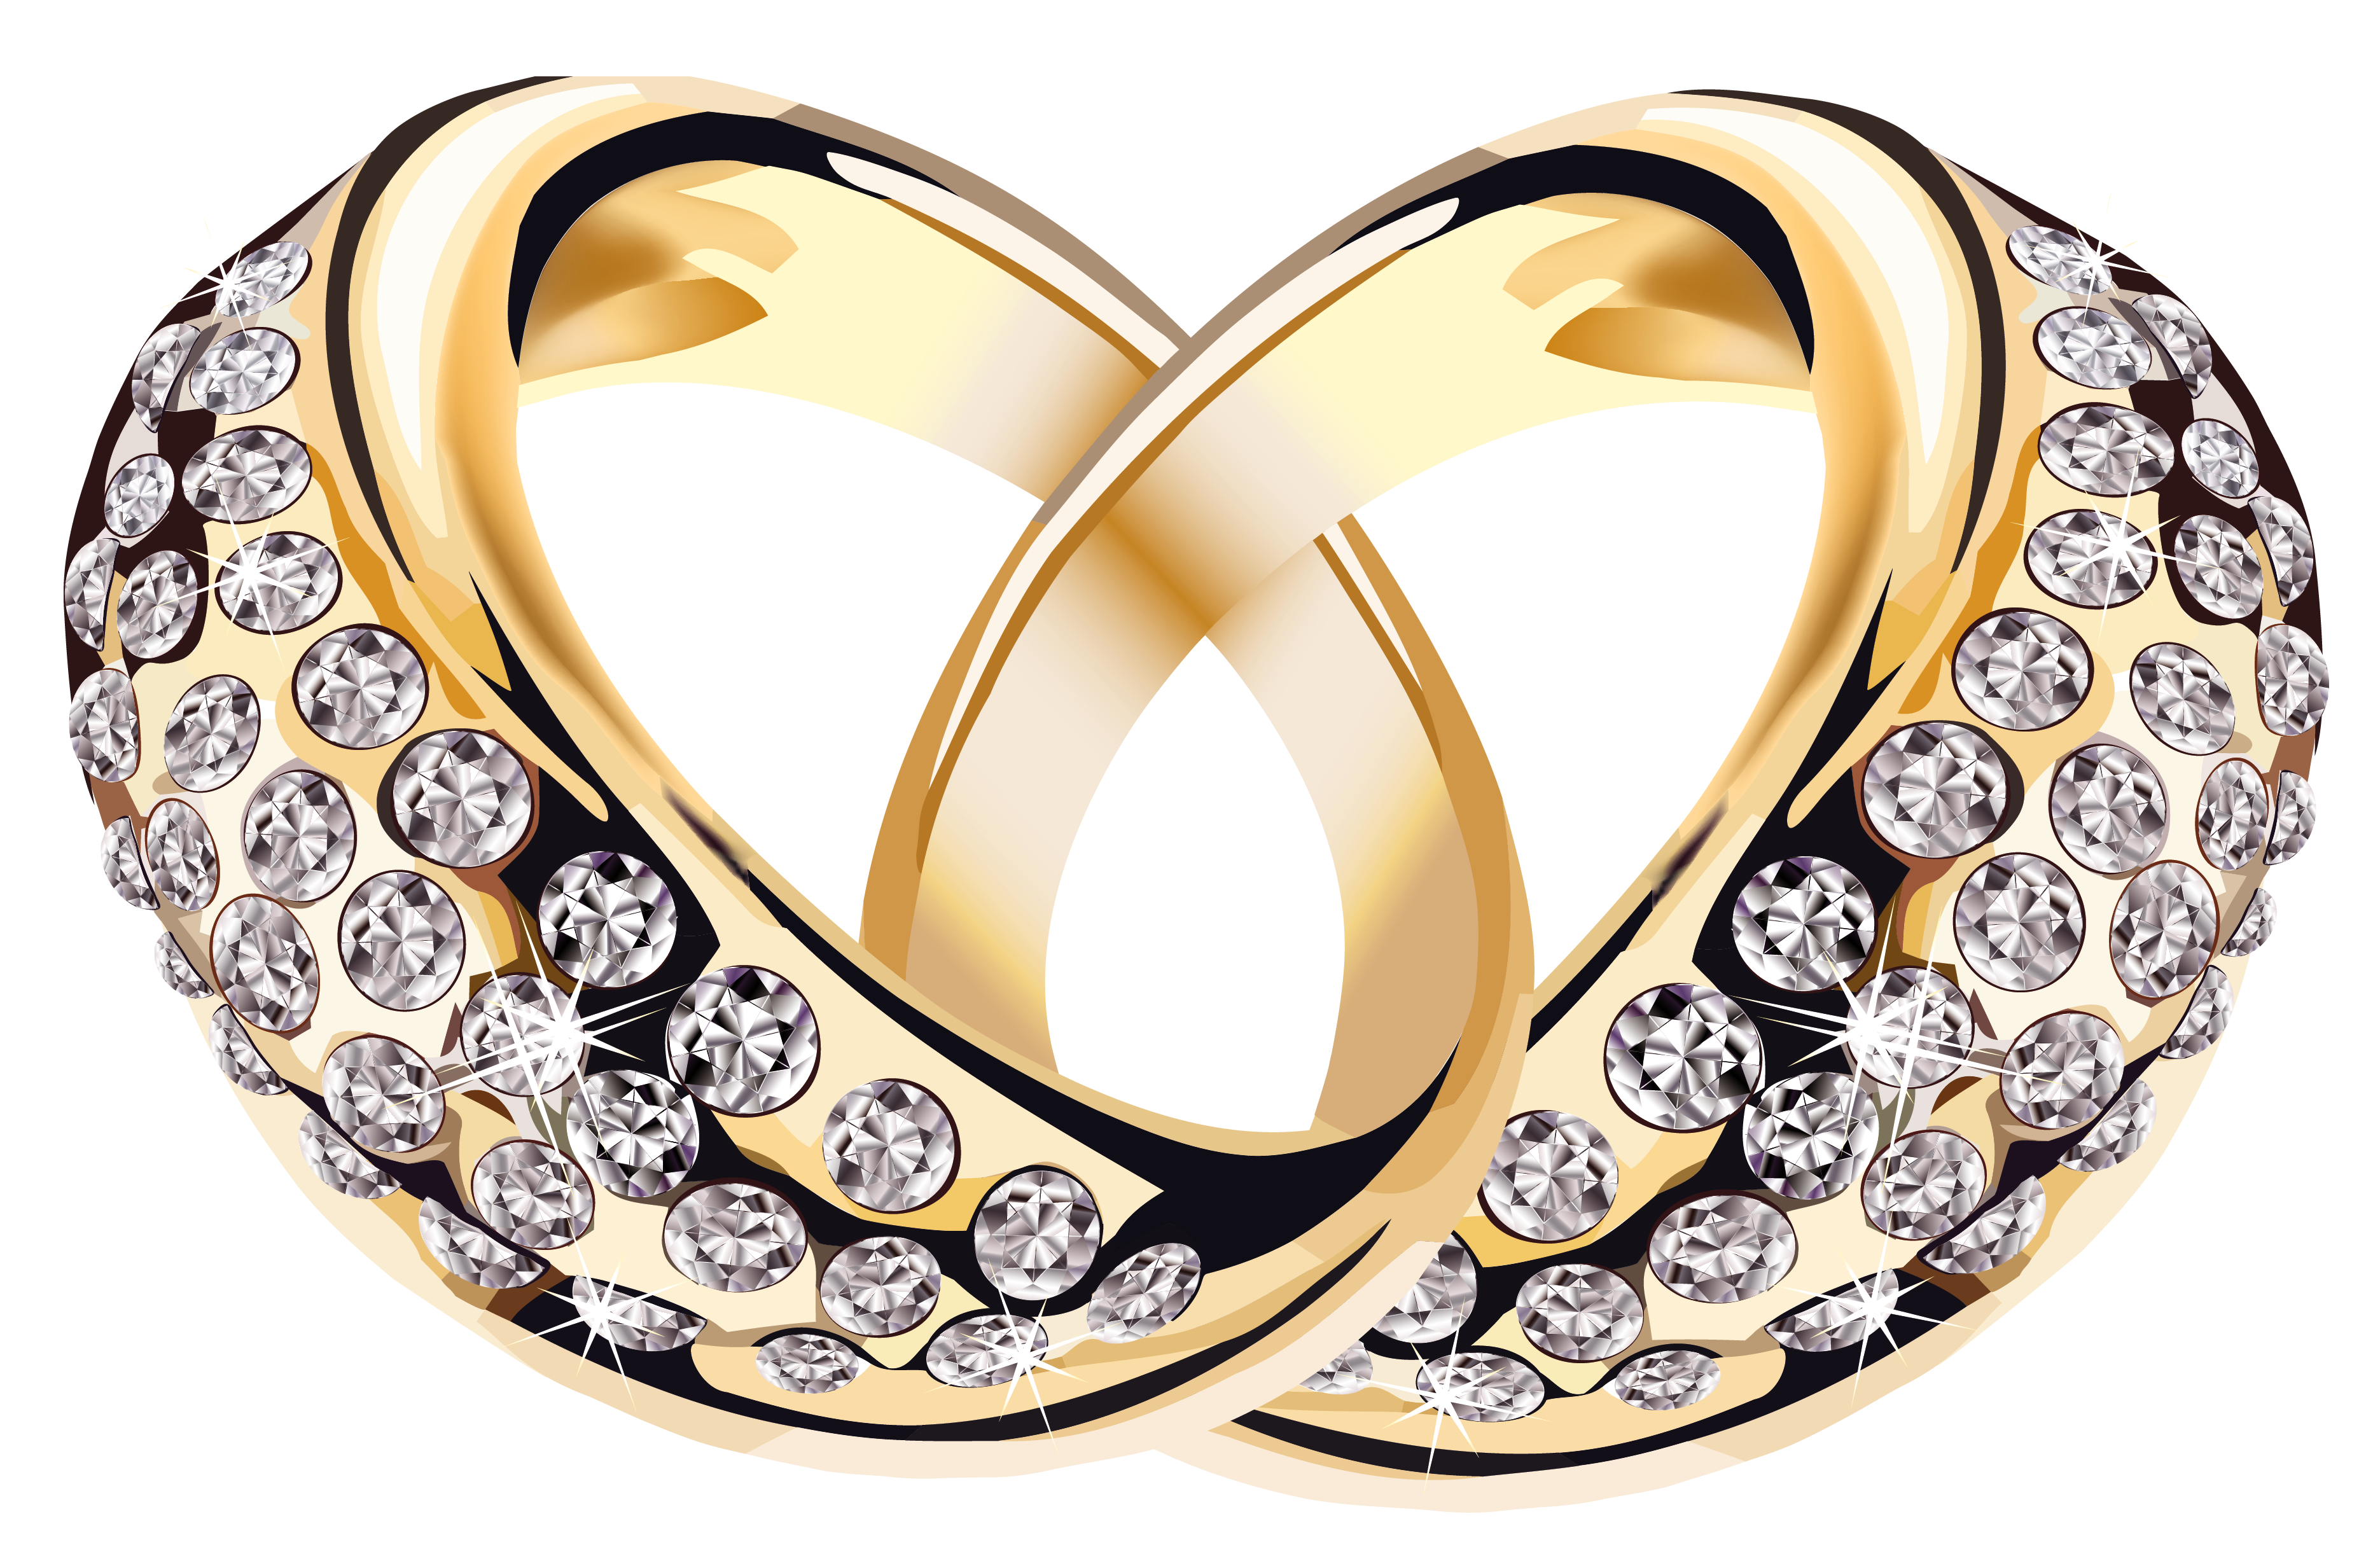 Good clipart high. Gold rings with diamonds